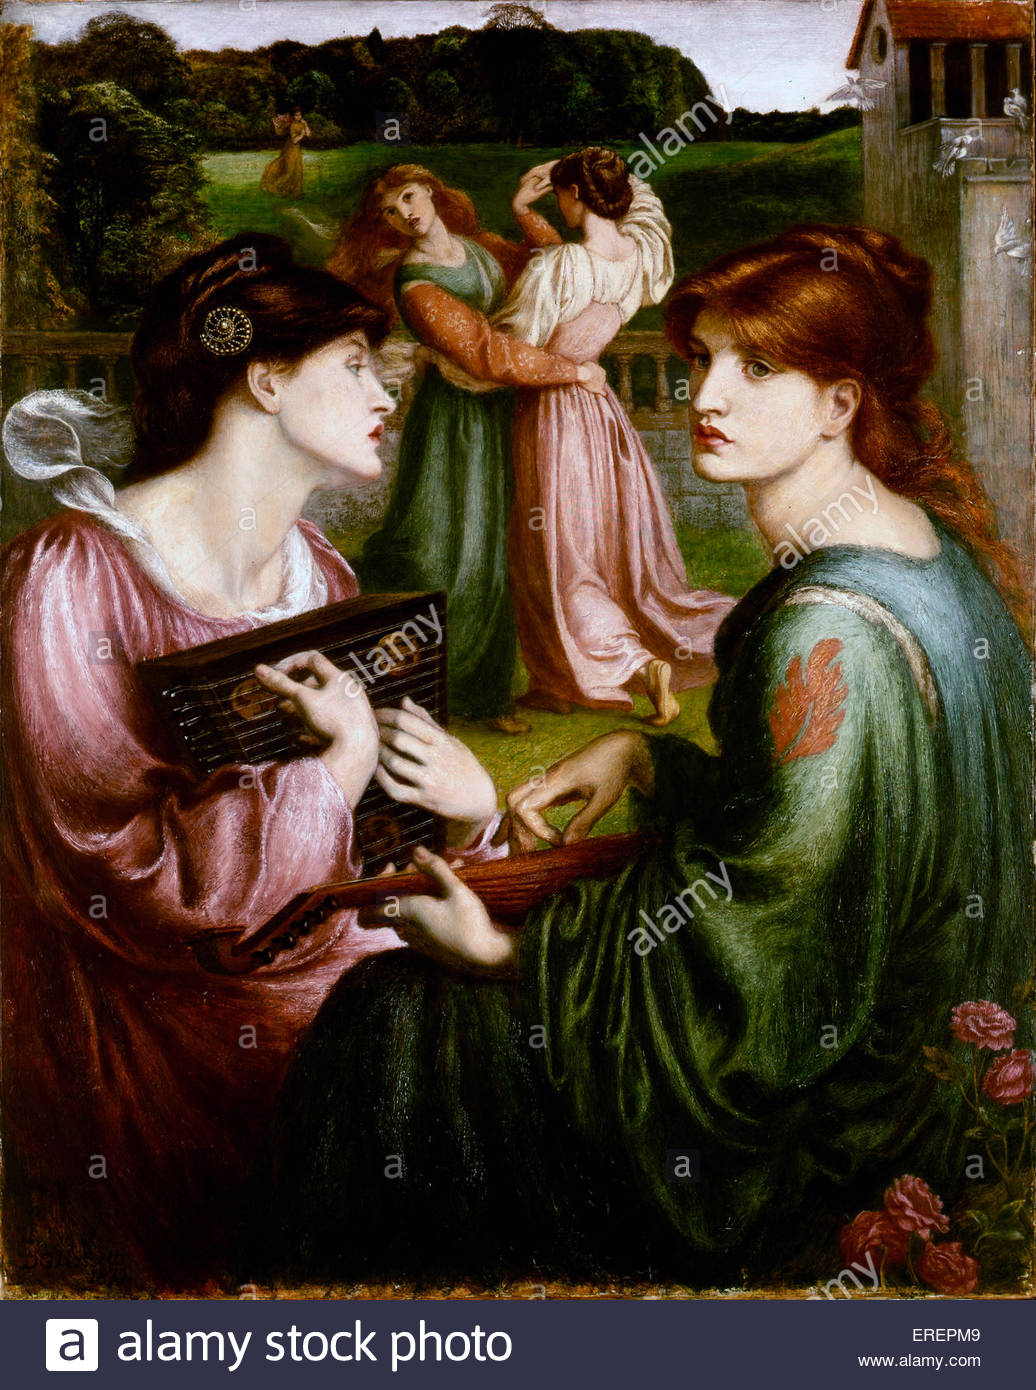 The Bower Meadow by Dante Gabriel Rossetti, 1850-1872. Background of  work painted outdoors, 1850, Sevenoaks, Kent, - Stock Image